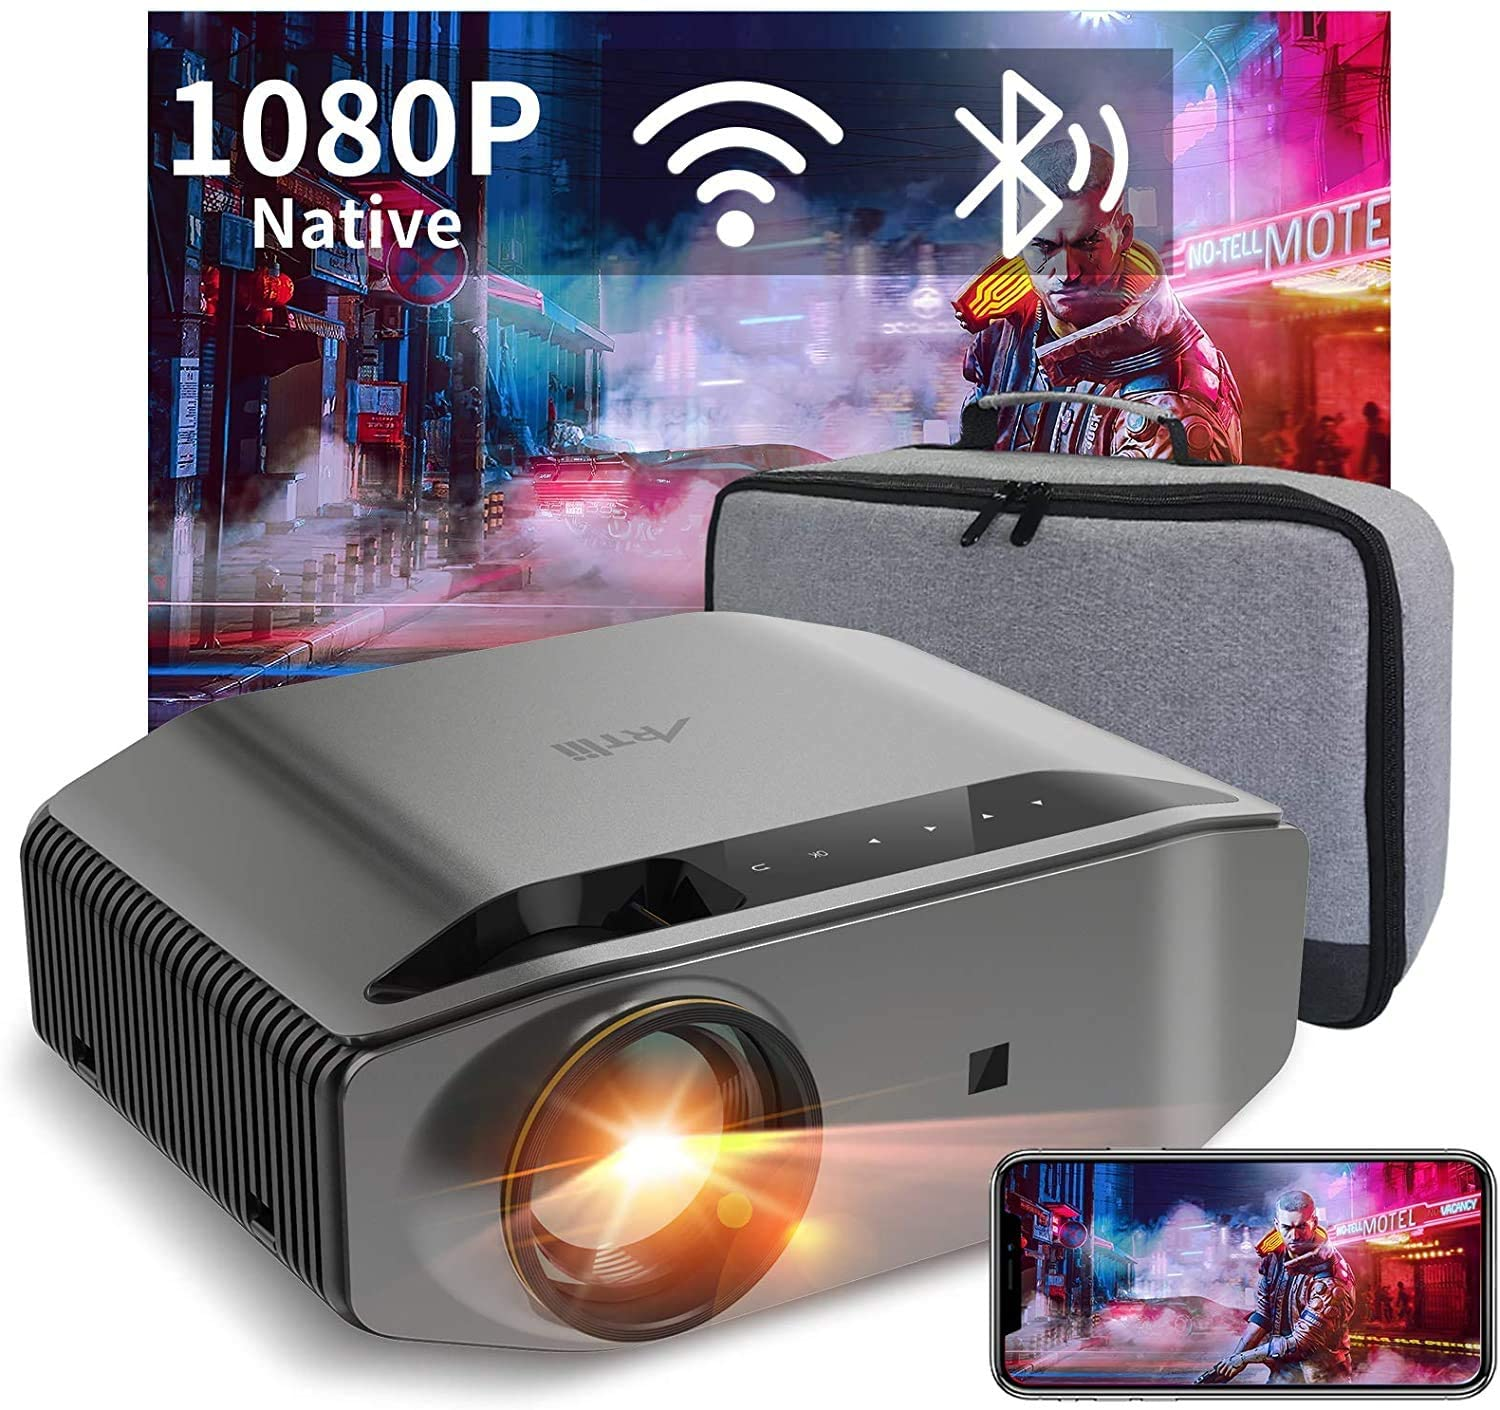 """5G WiFi Bluetooth Projector, Artlii Energon 2 Outdoor Projector Support 4K, 340 ANSI Lumen 250"""" Display, Keystone&Zoom, Full HD Native 1080P Projector Compatible w/ TV Stick, iOS, Android, PS5"""